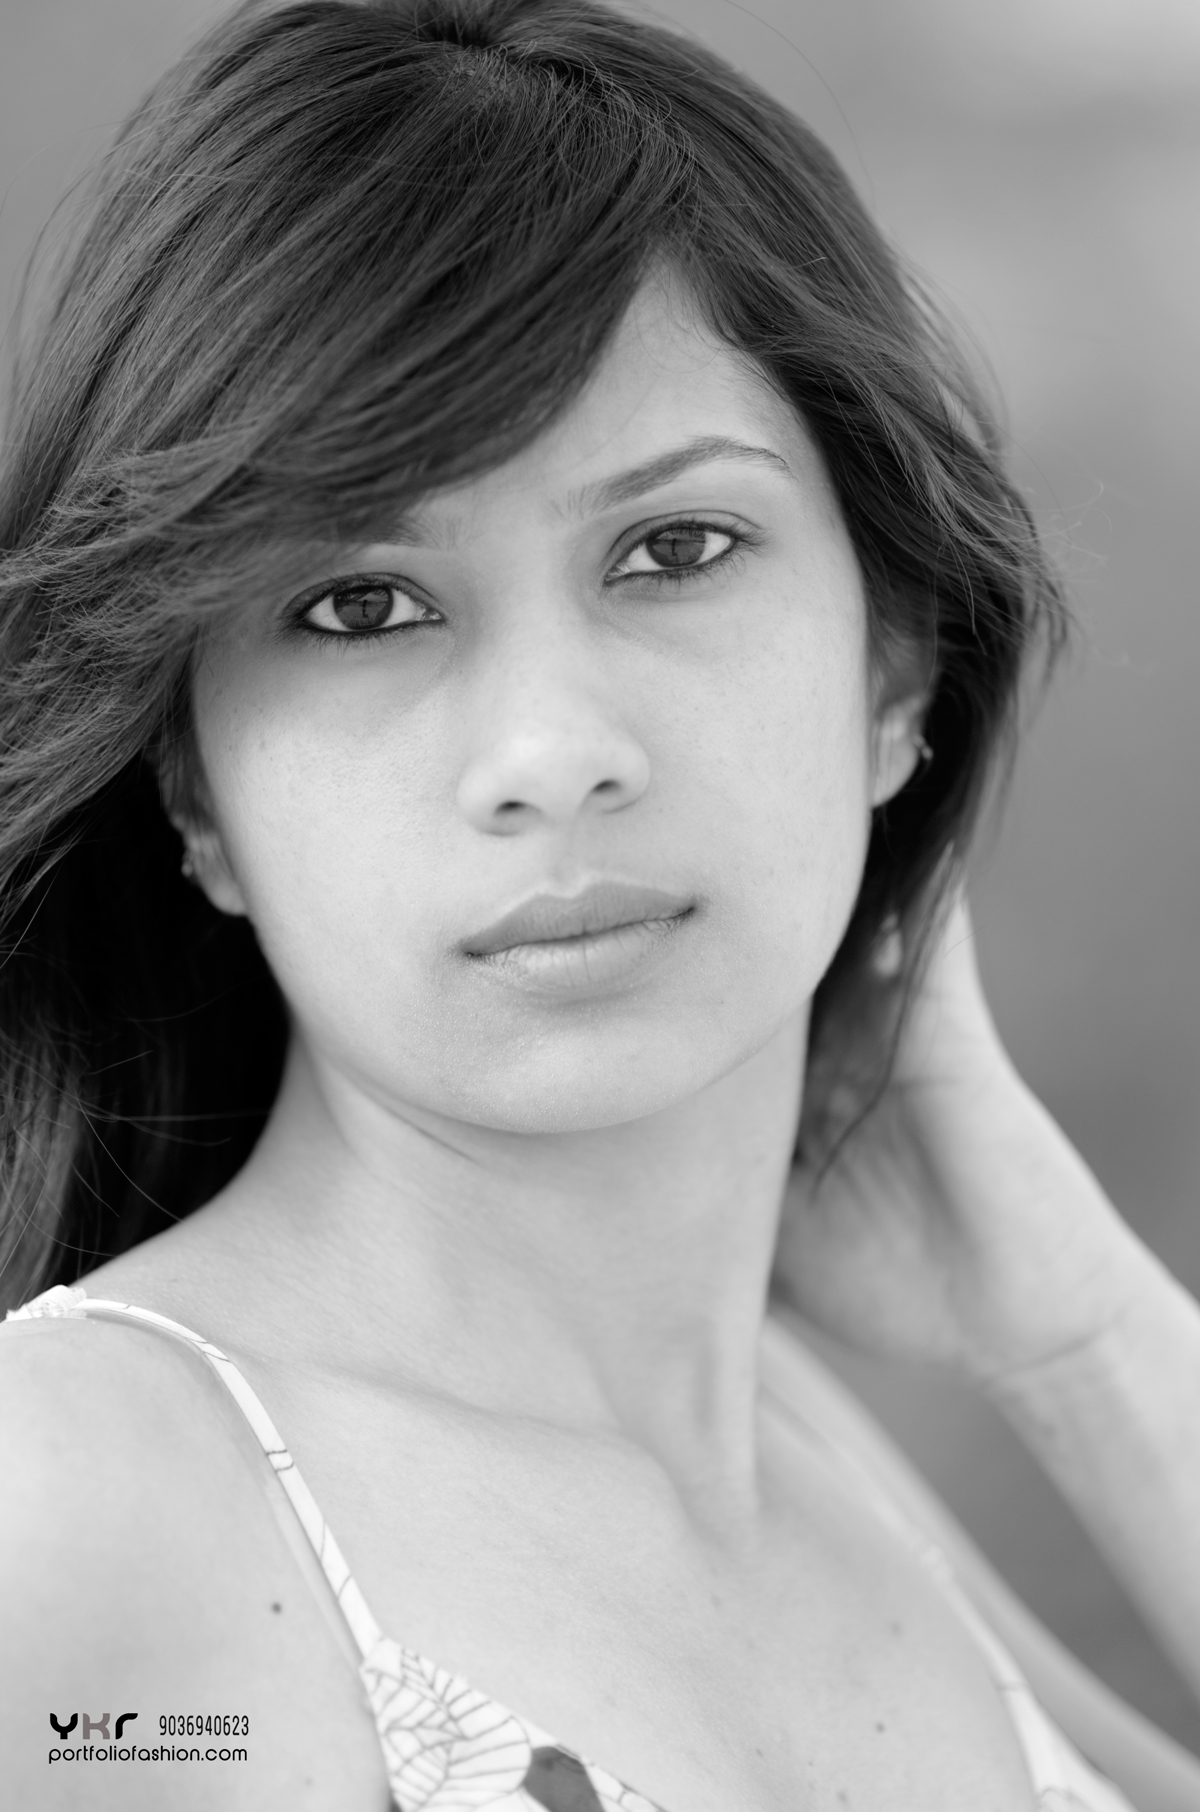 Modeling Portfolio female, modeling photography, India's Best model